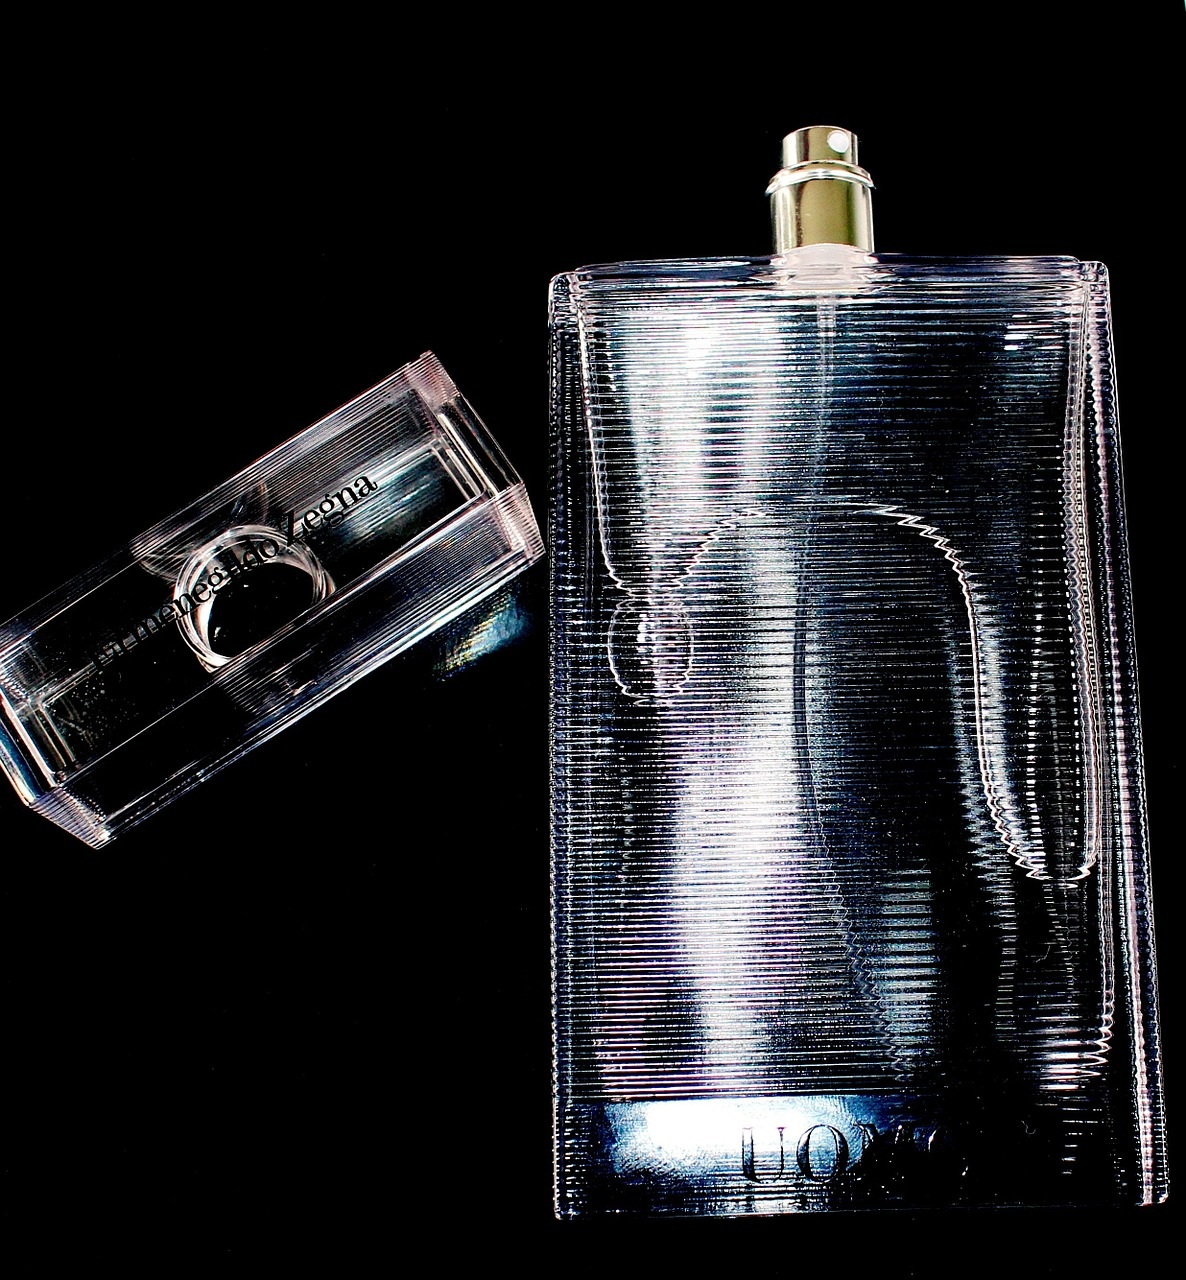 perfume,fragrance,bottle,sprayer,lid,cosmetics,male,hygiene,perfume bottle,glass bottle,glasses,deo,deodorant,free pictures, free photos, free images, royalty free, free illustrations, public domain